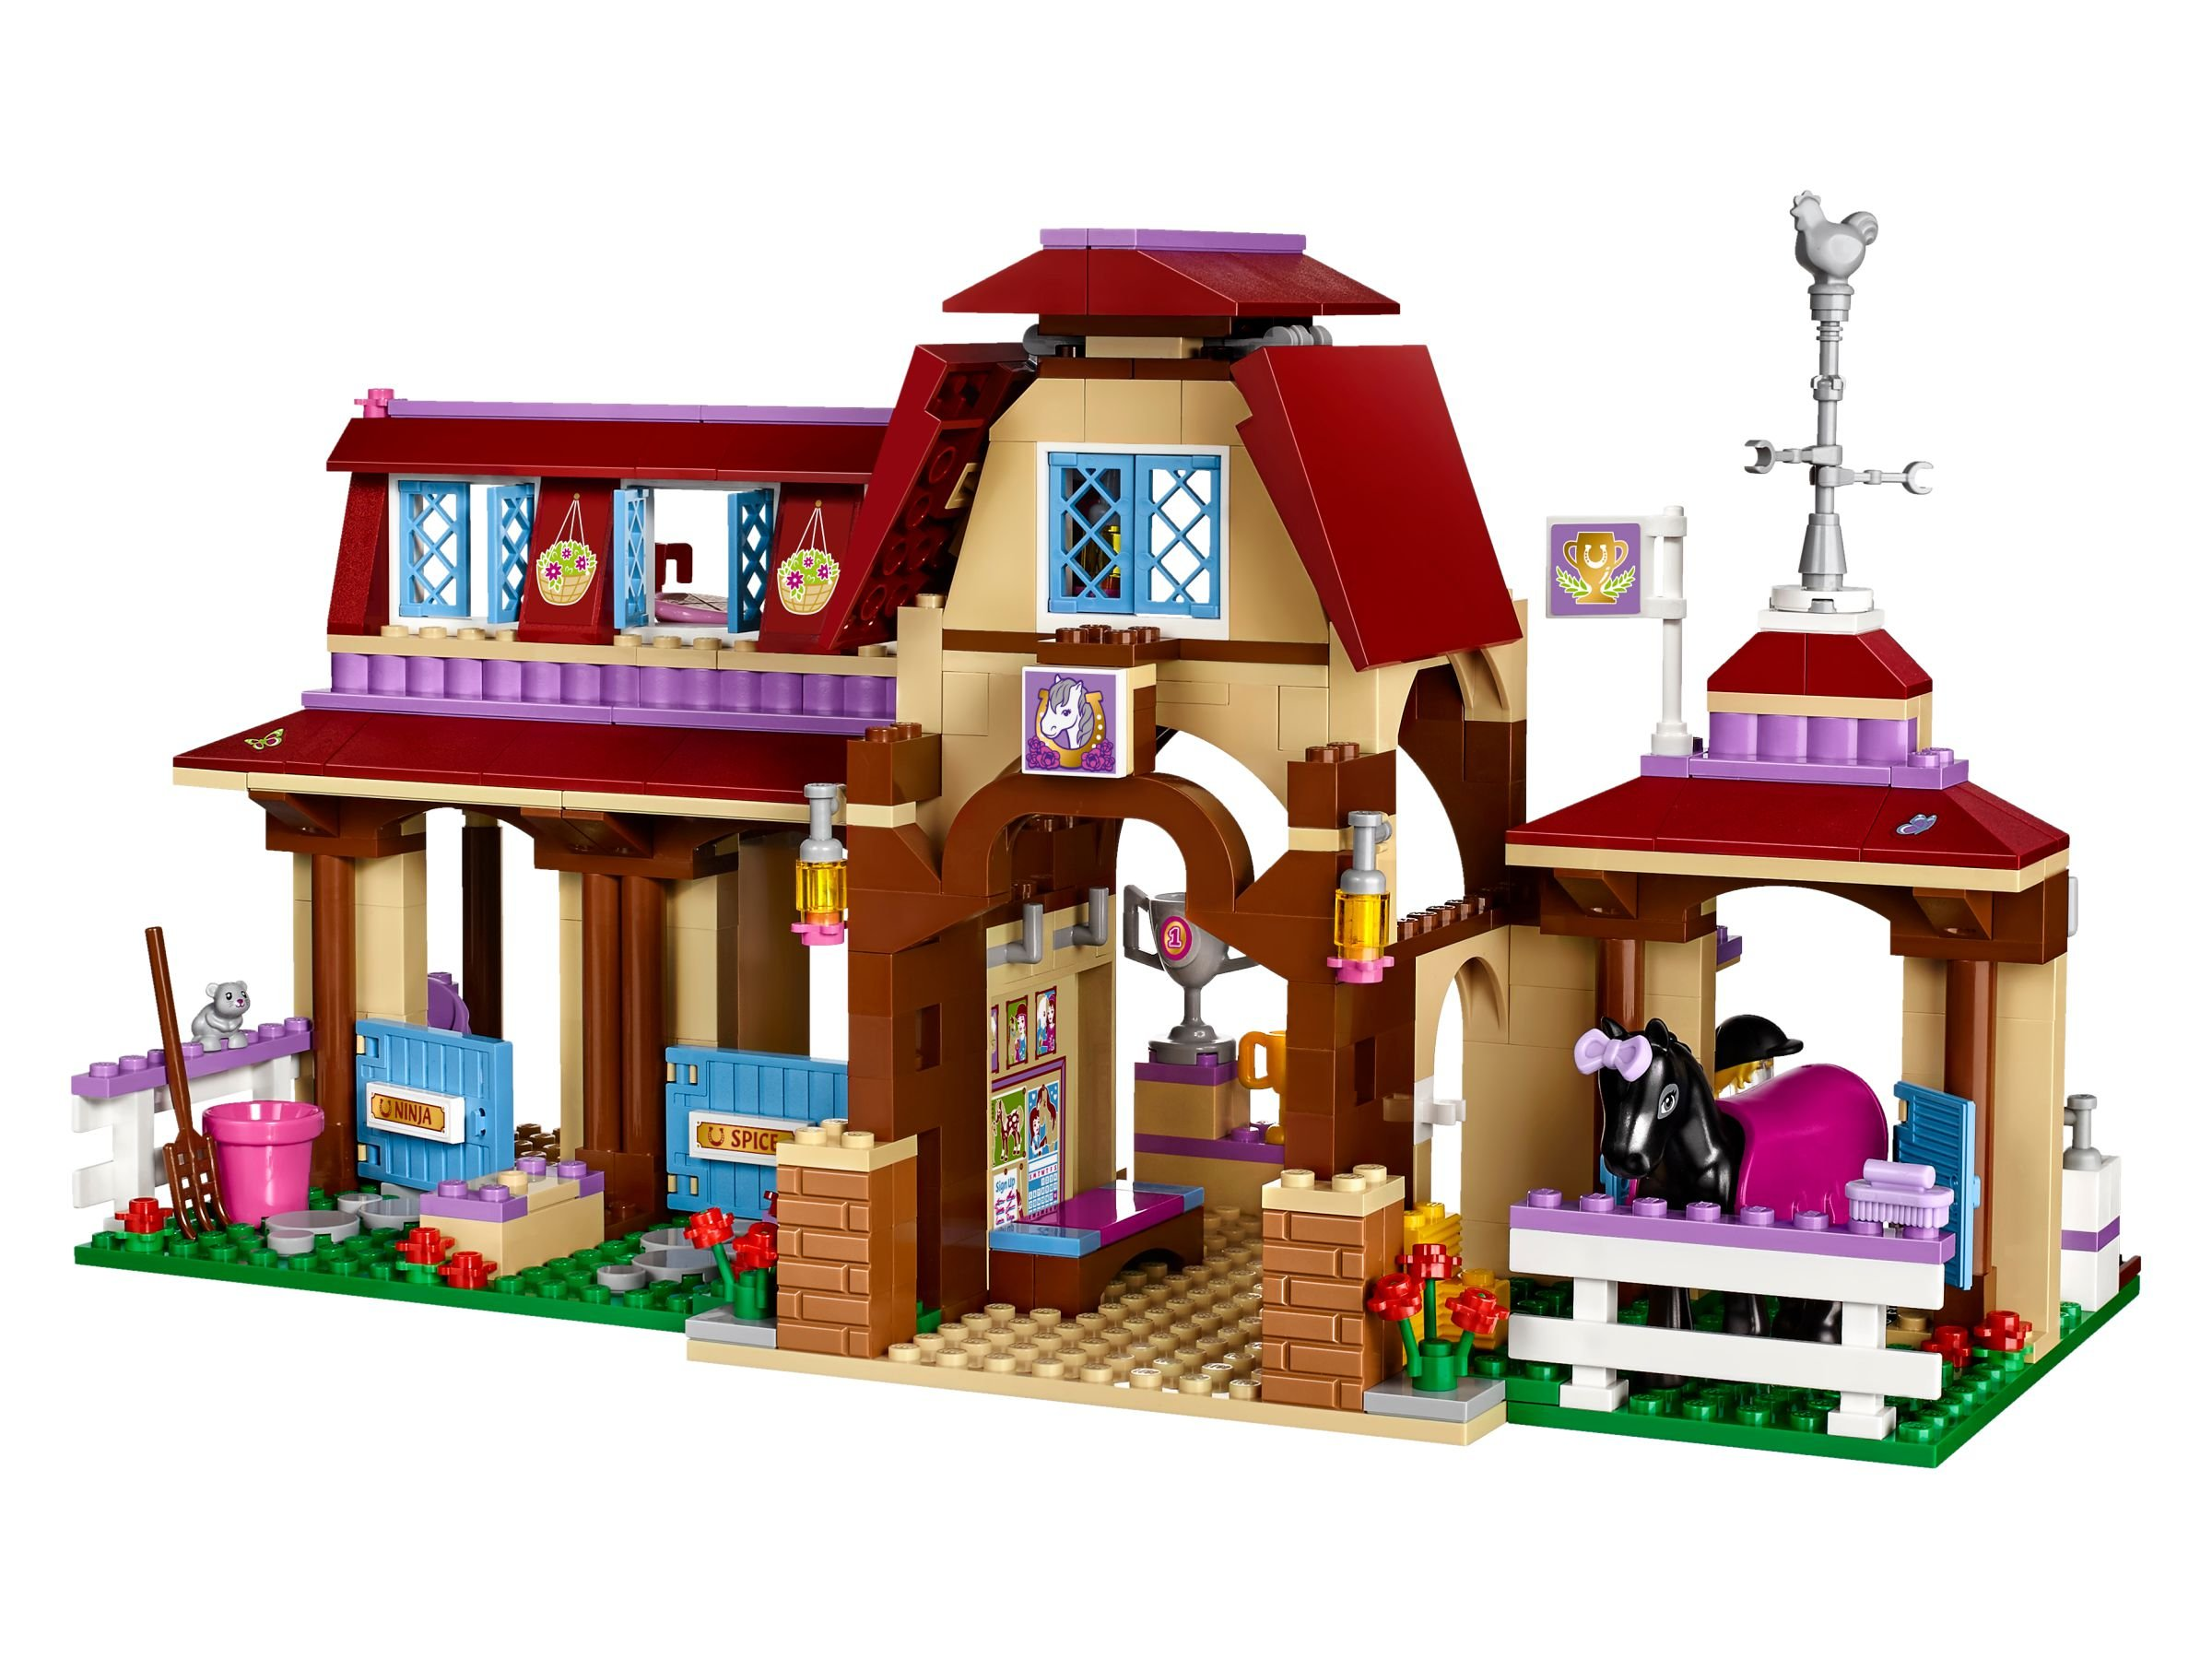 lego 41126 heartlake reiterhof friends 2016 ab 49 99 23 gespart heartlake riding club. Black Bedroom Furniture Sets. Home Design Ideas